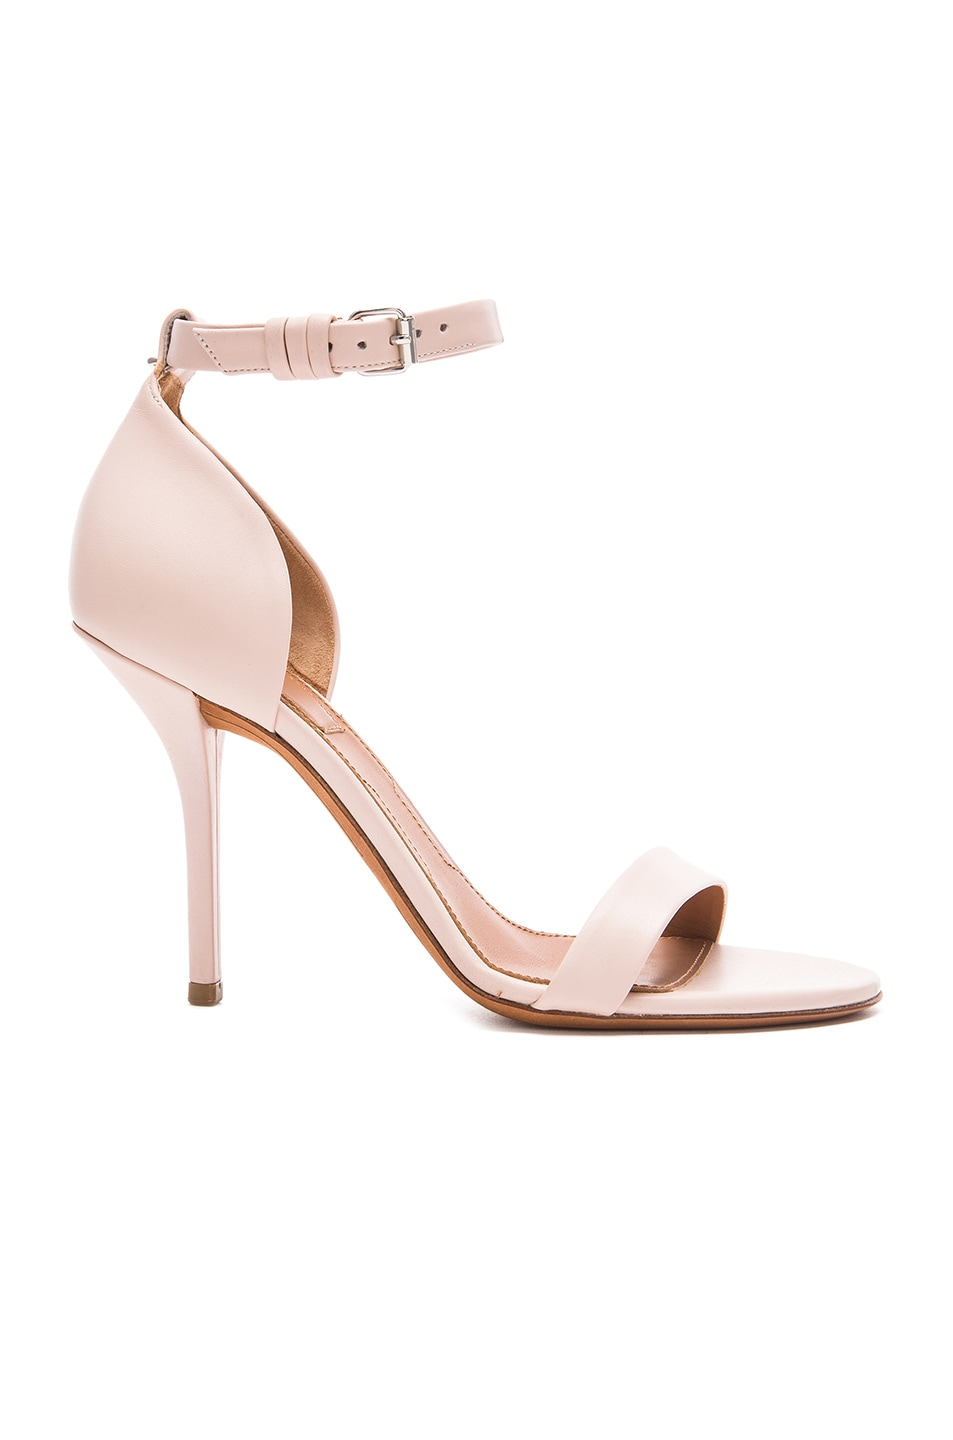 Image 1 of Givenchy Maremma Leather Heels in Nude